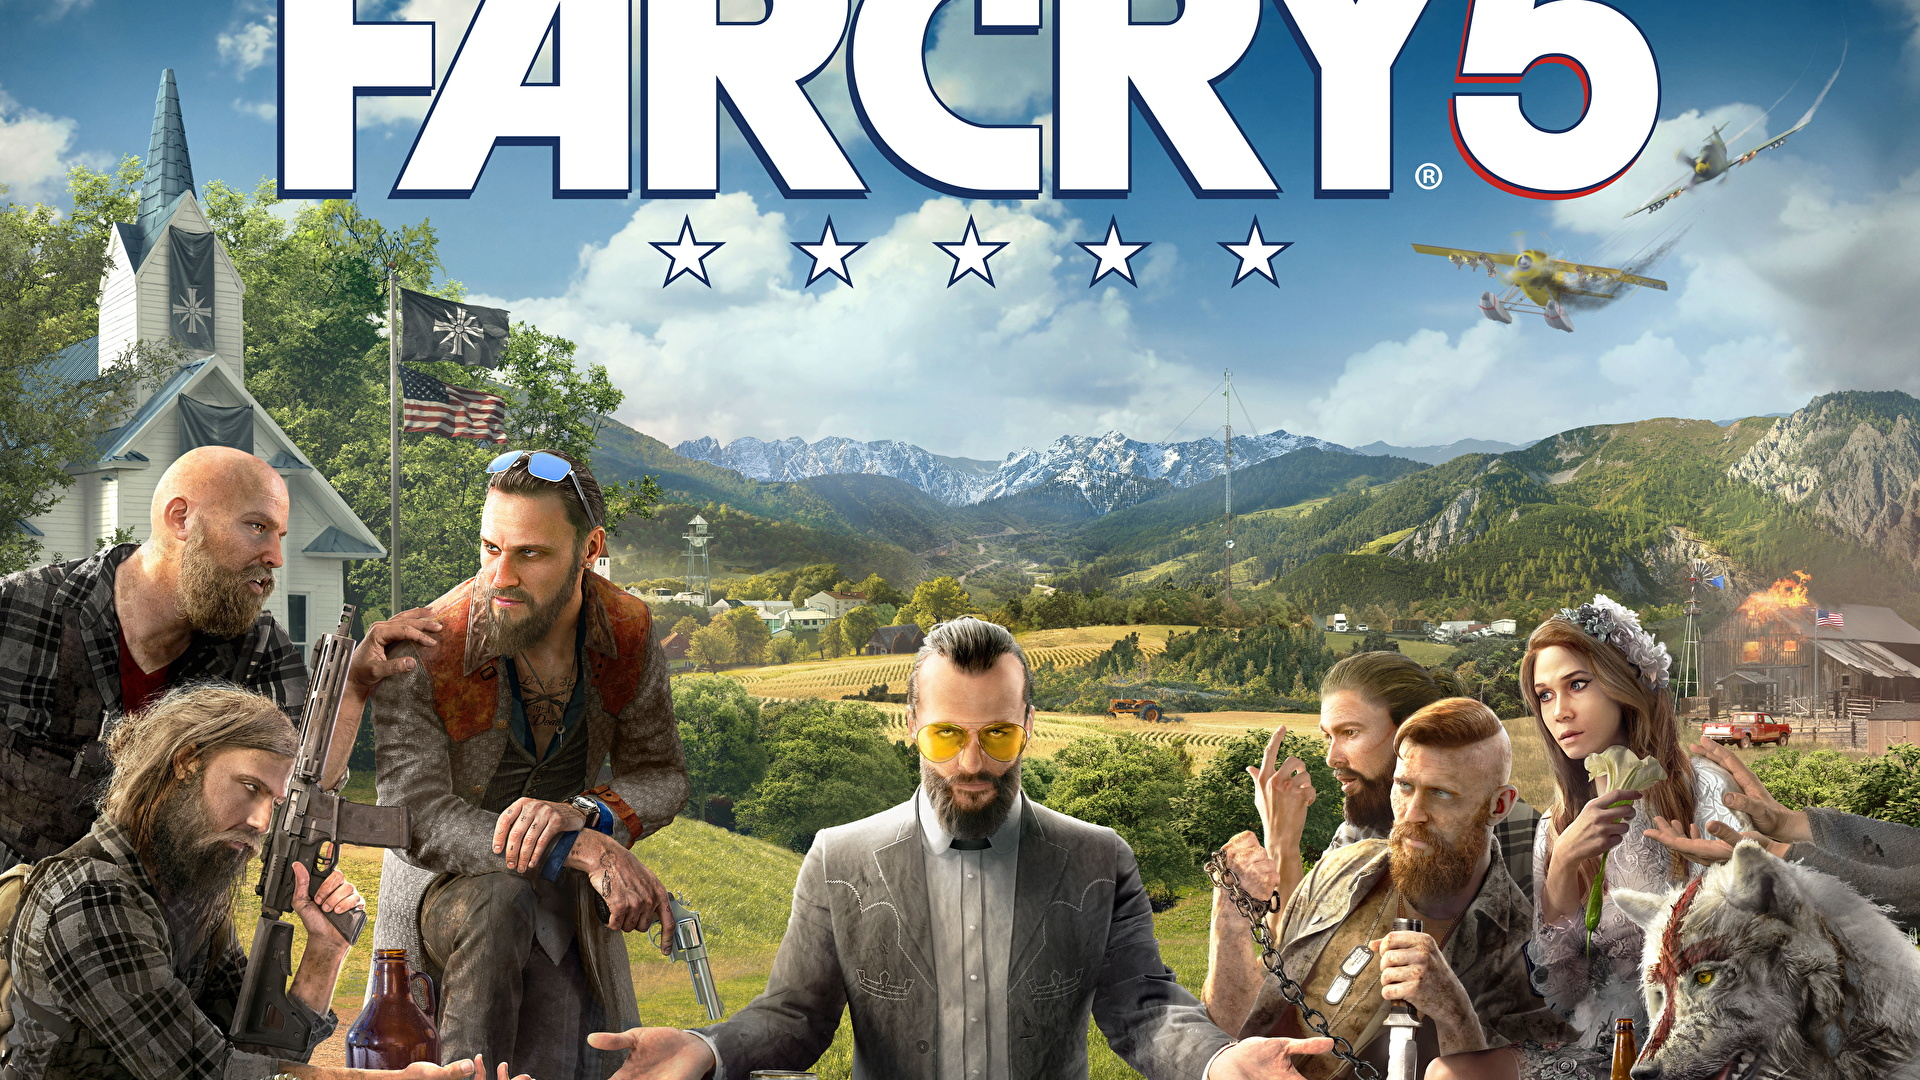 Picture Far Cry Men 5 Flag Games Table 1920x1080